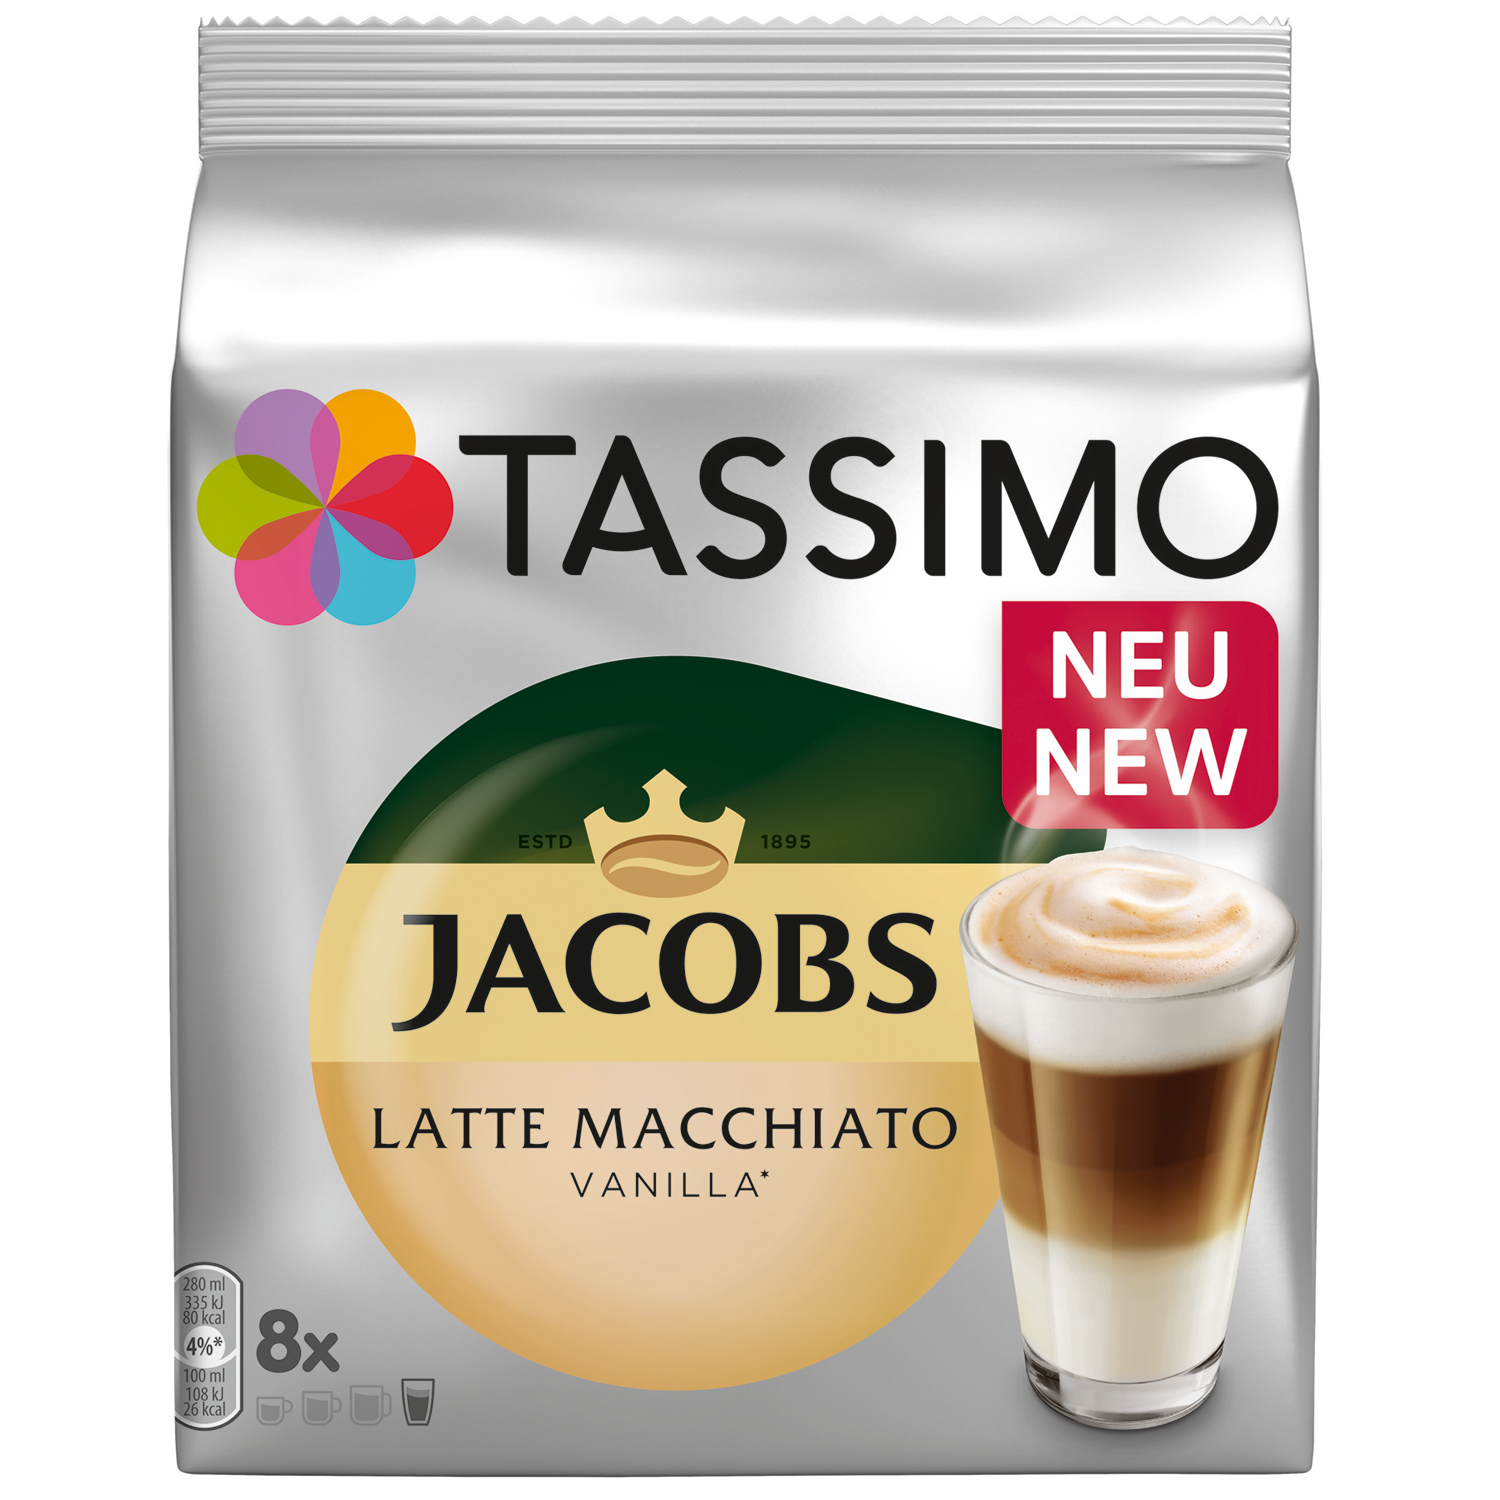 tassimo jacobs latte macchiato vanilla online kaufen im world of sweets shop. Black Bedroom Furniture Sets. Home Design Ideas